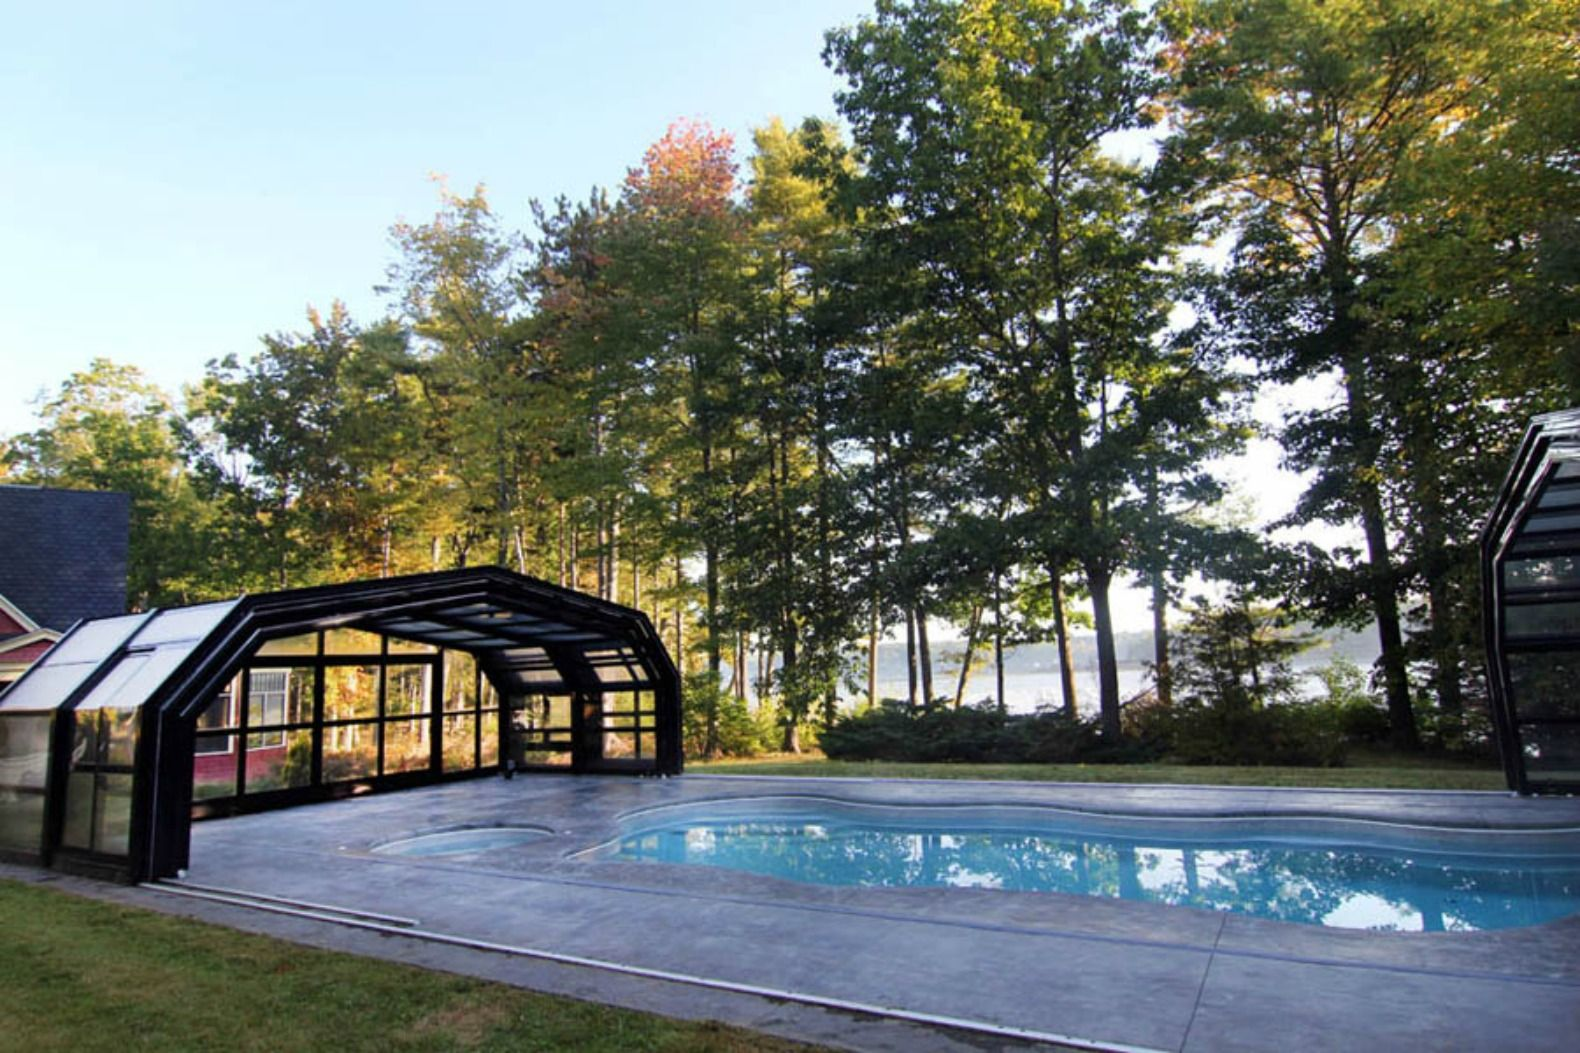 This Amazing Retractable Roof Shelters A Pool In Maine For Year Round Fun Pool Enclosures Pool Swimming Pool Enclosures